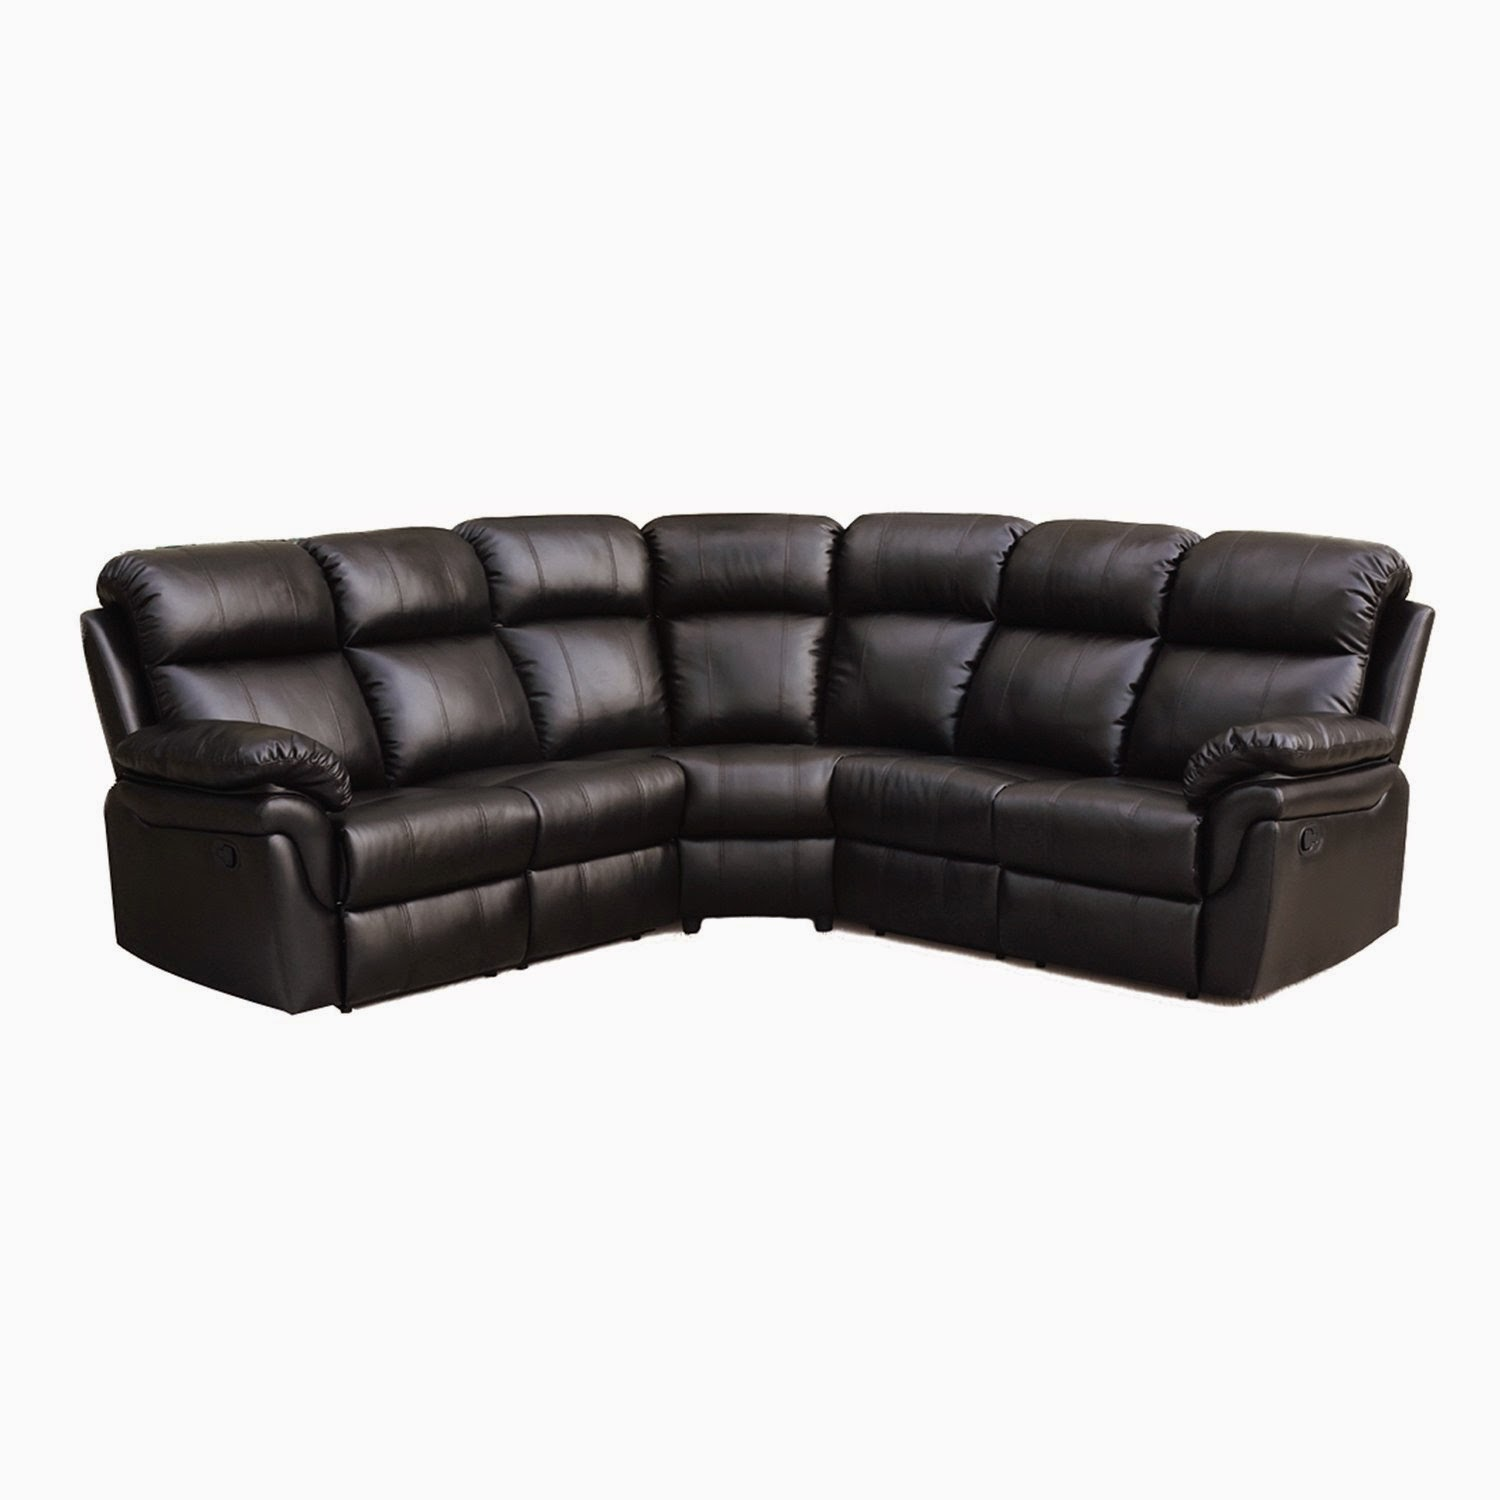 Recliner Sofa Sets: Reclining Sofa Sets Sale